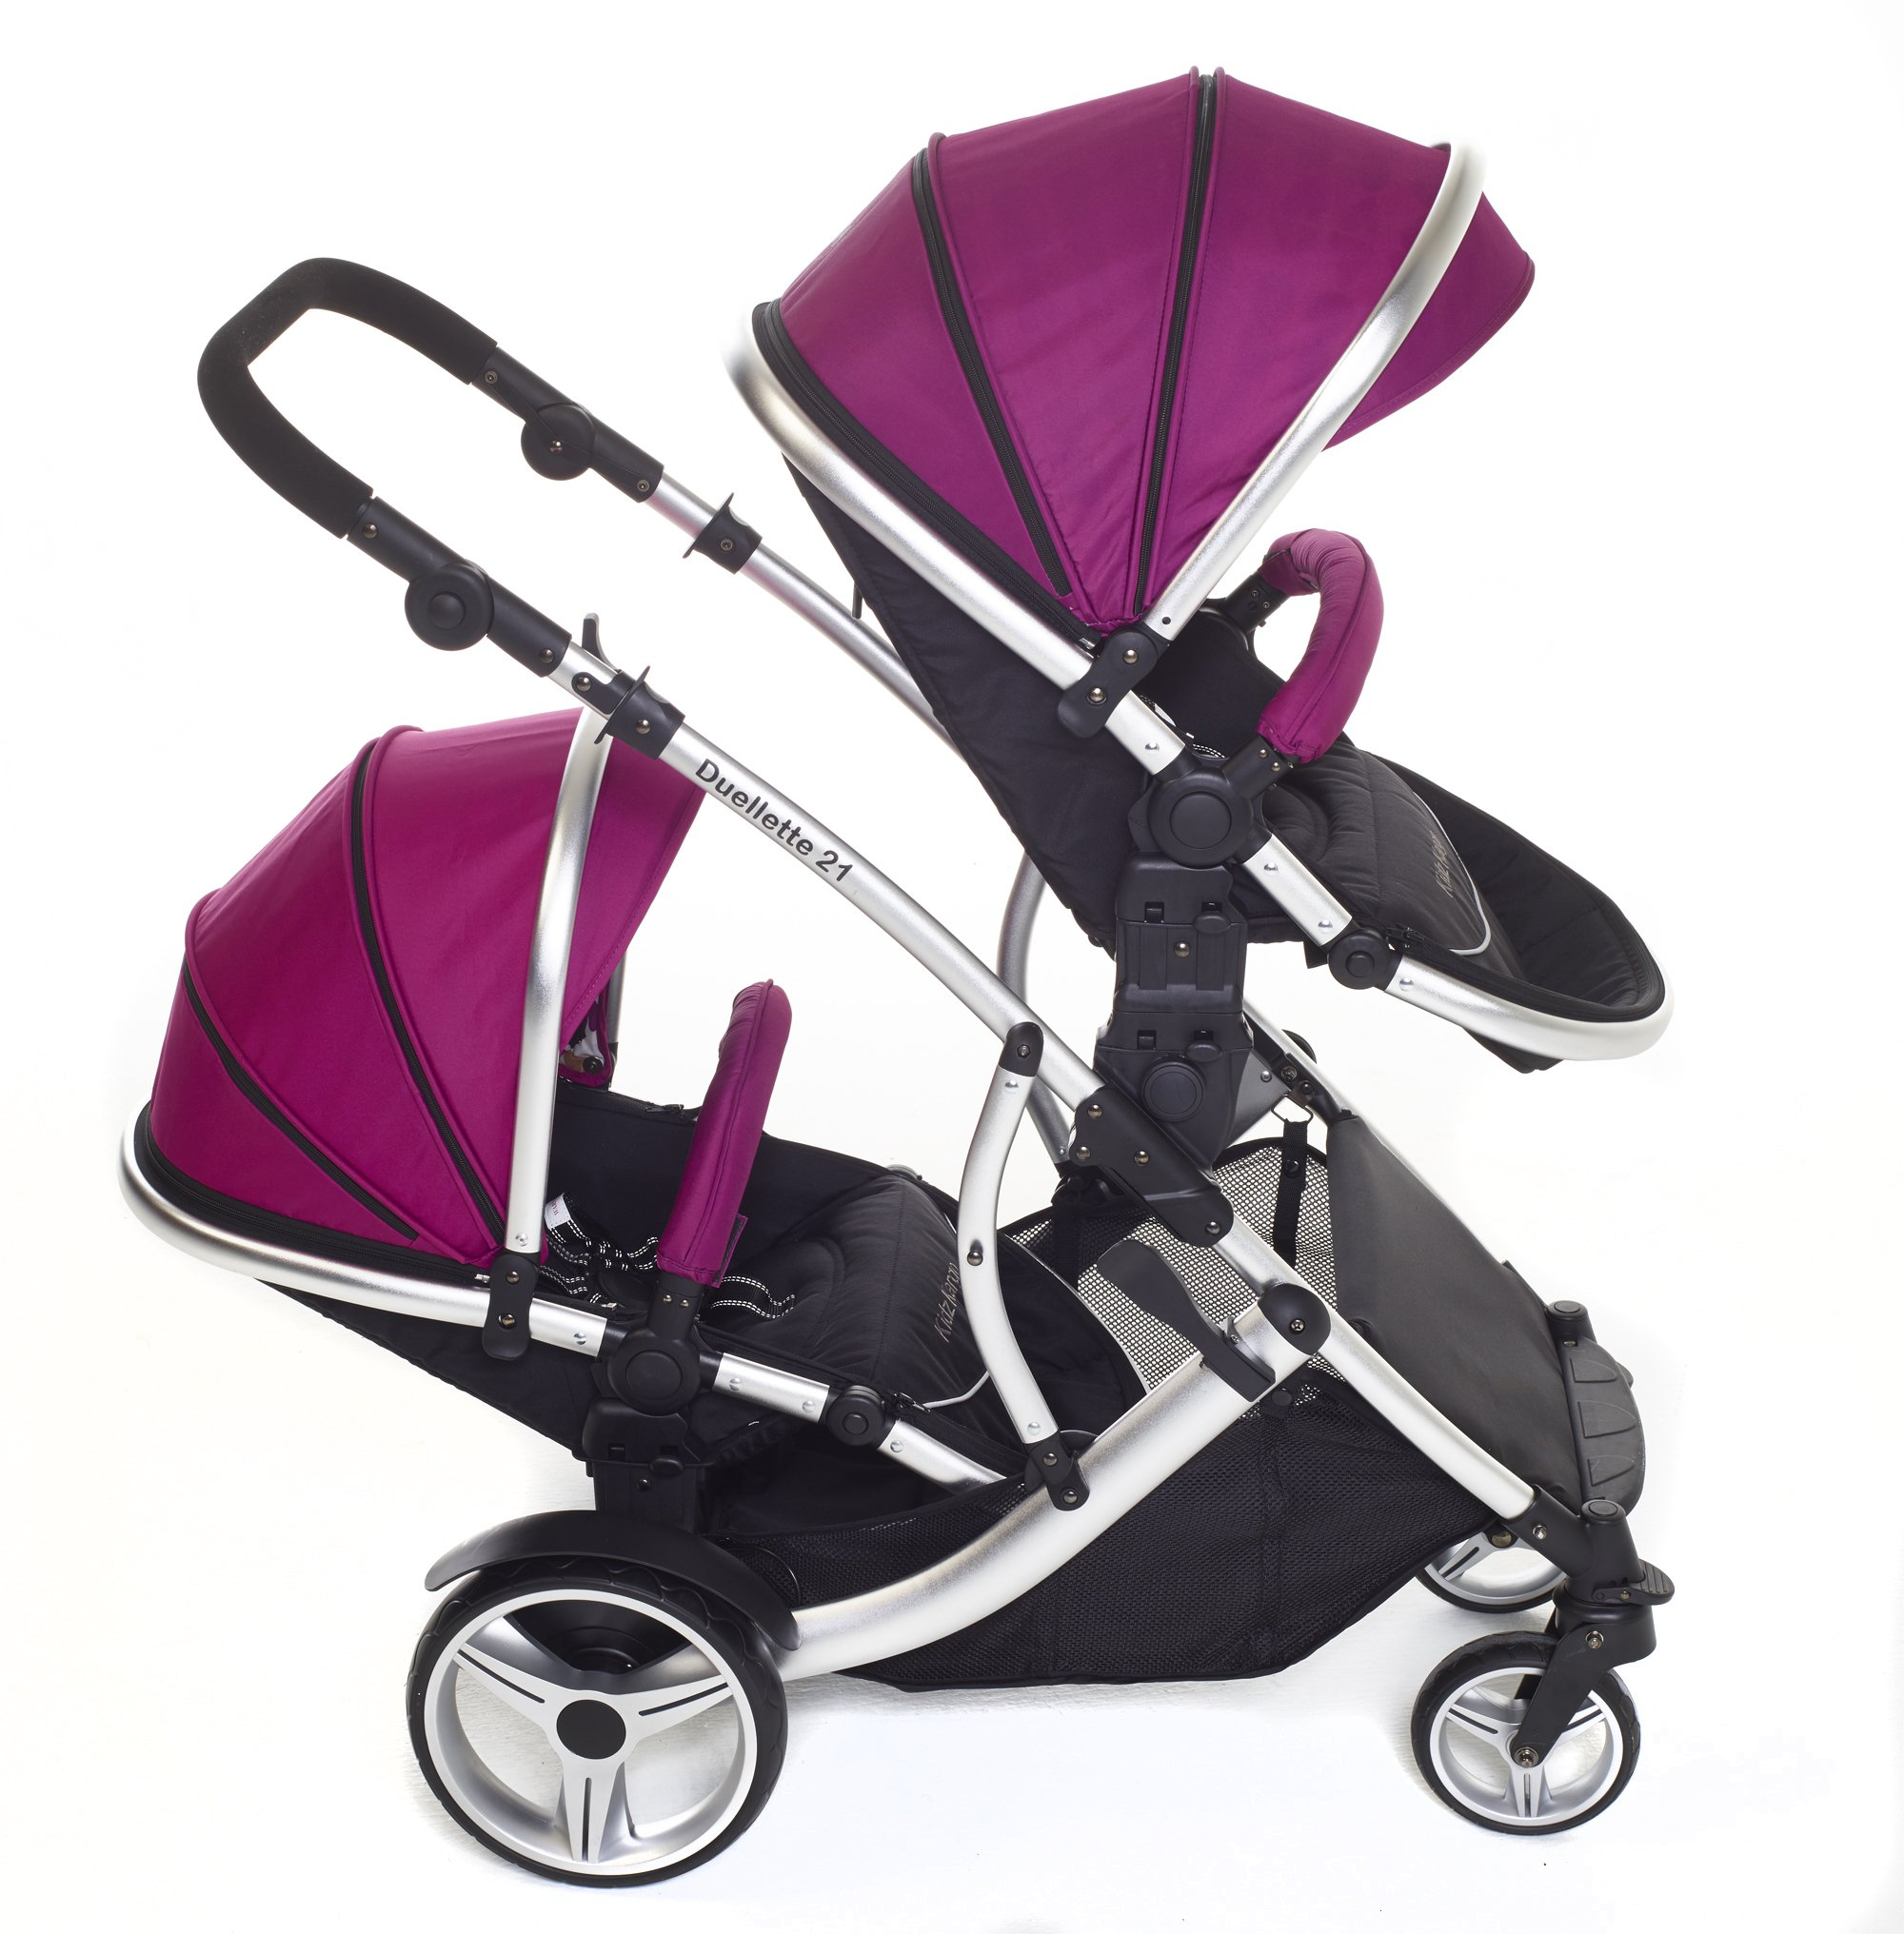 Kids Kargo Double Twin Tandem Pushchair. Duellette Combi Suitable from birth, Carrycot converts to toddler seat unit. Stroller by Kids Kargo (Dooglebug Raspberry)  Versatile. Suitable for Newborn Twins Compatible with car seats; Kidz Kargo, Britax Baby safe or Maxi Cosi adaptors. carrycots have mattress and soft lining, which zip off. Remove lining and lid, when baby grows out of carrycot mode, converts to seat unit 6